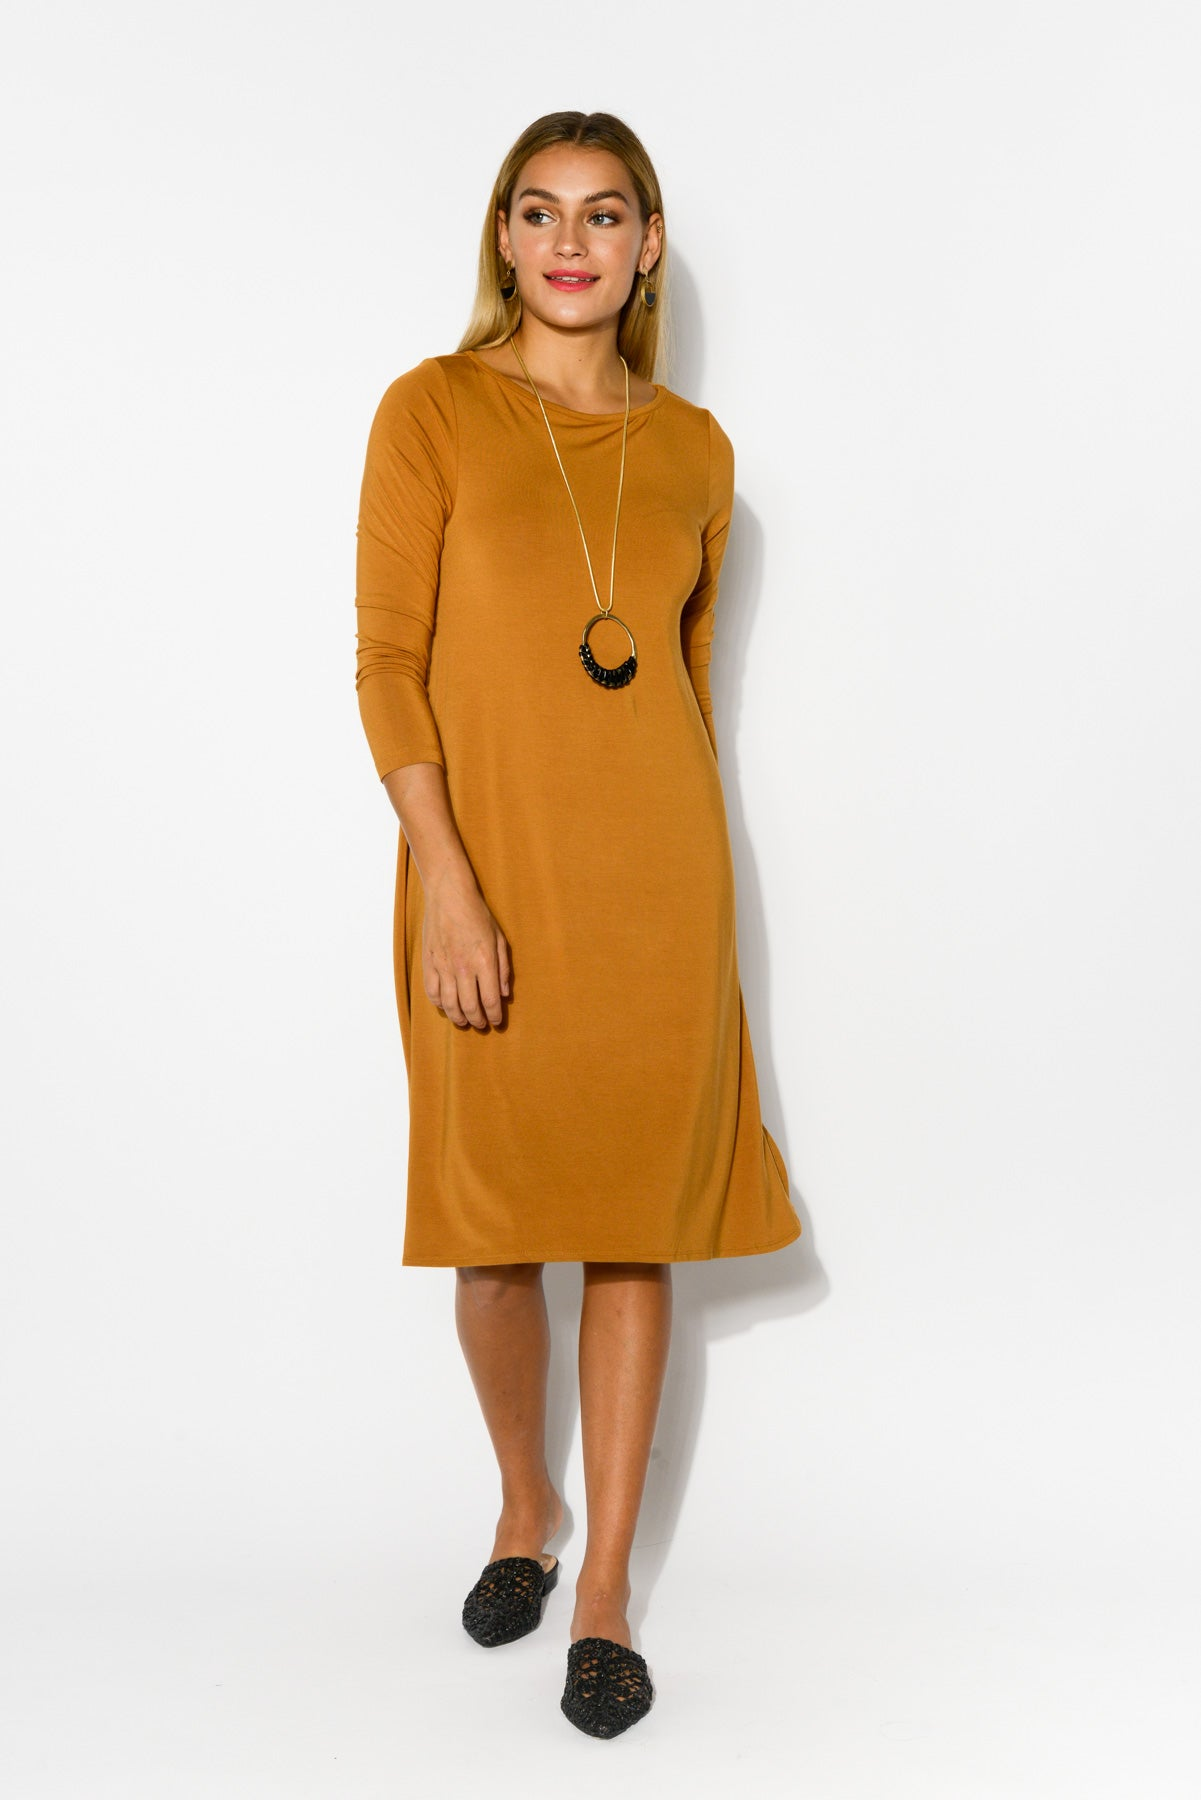 Cher Caramel Bamboo Sleeved Dress - Blue Bungalow